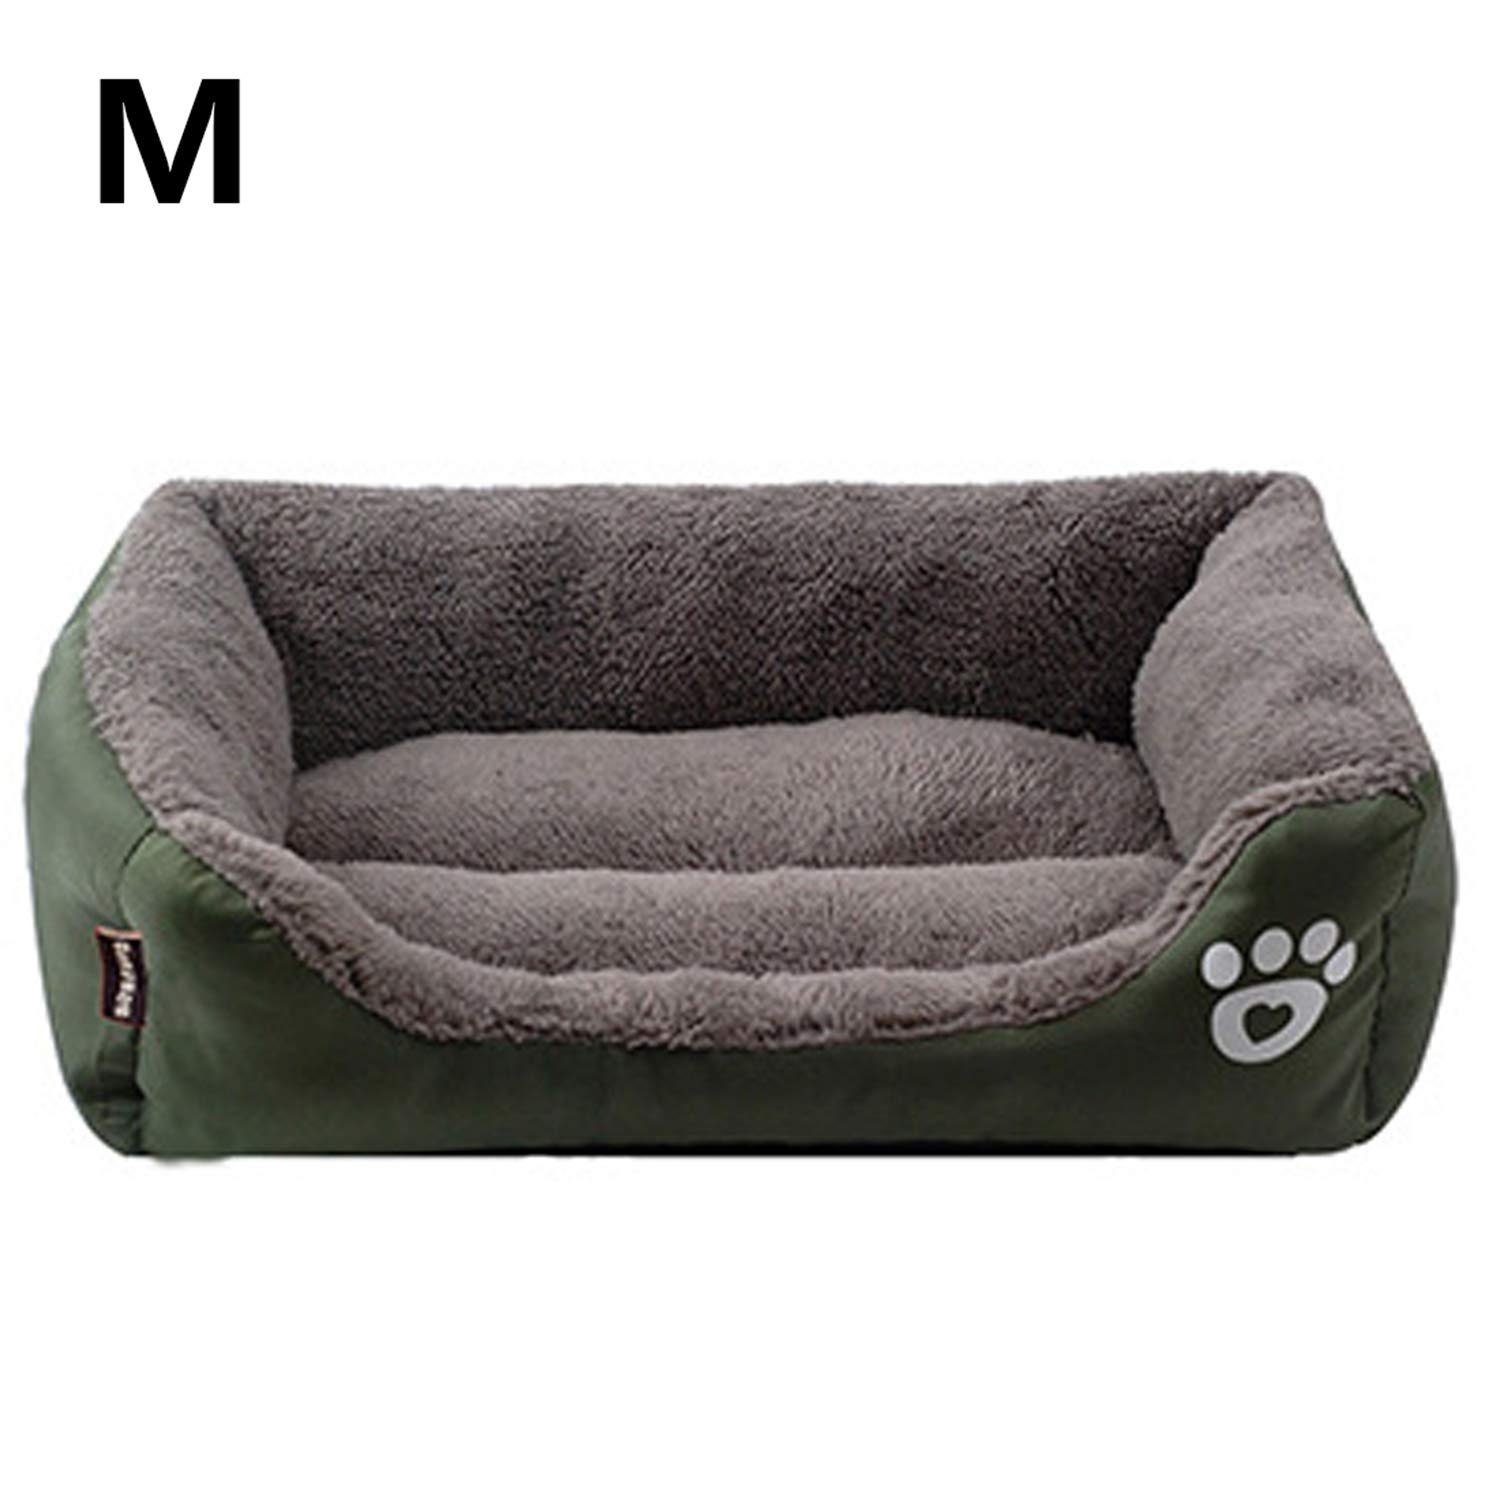 Blackish green 58X45X14cm Blackish green 58X45X14cm PETFDH Pet Sofa Dog Bed Warming Dog House Soft Material Nest Dog Baskets Fall and Winter Warm Kennel for Cat Puppy Blackish Green 58X45X14cm